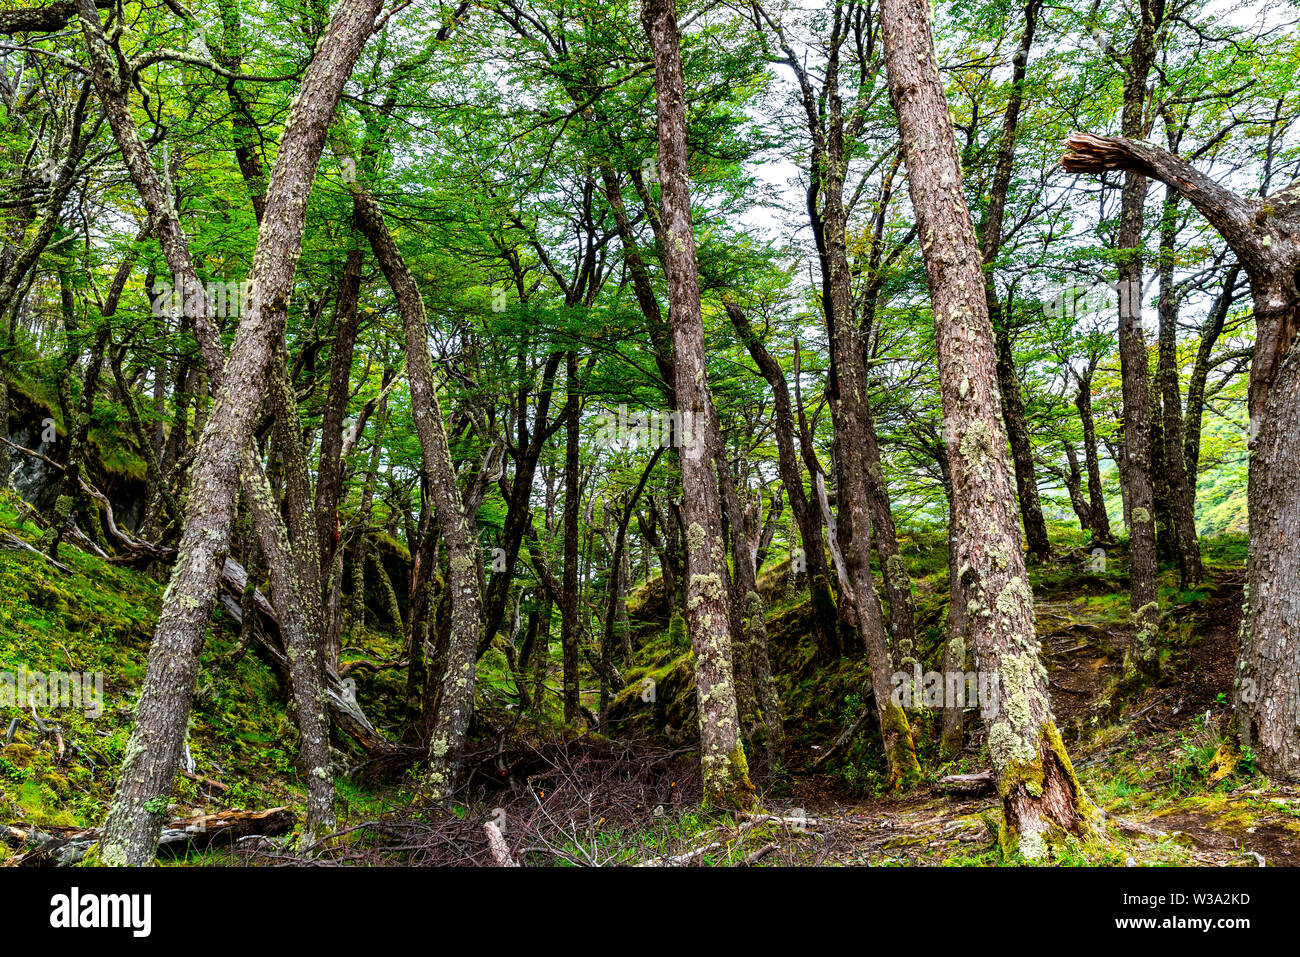 View of forest at Los Glaciares National Park in Argentine Patagonia - Stock Image